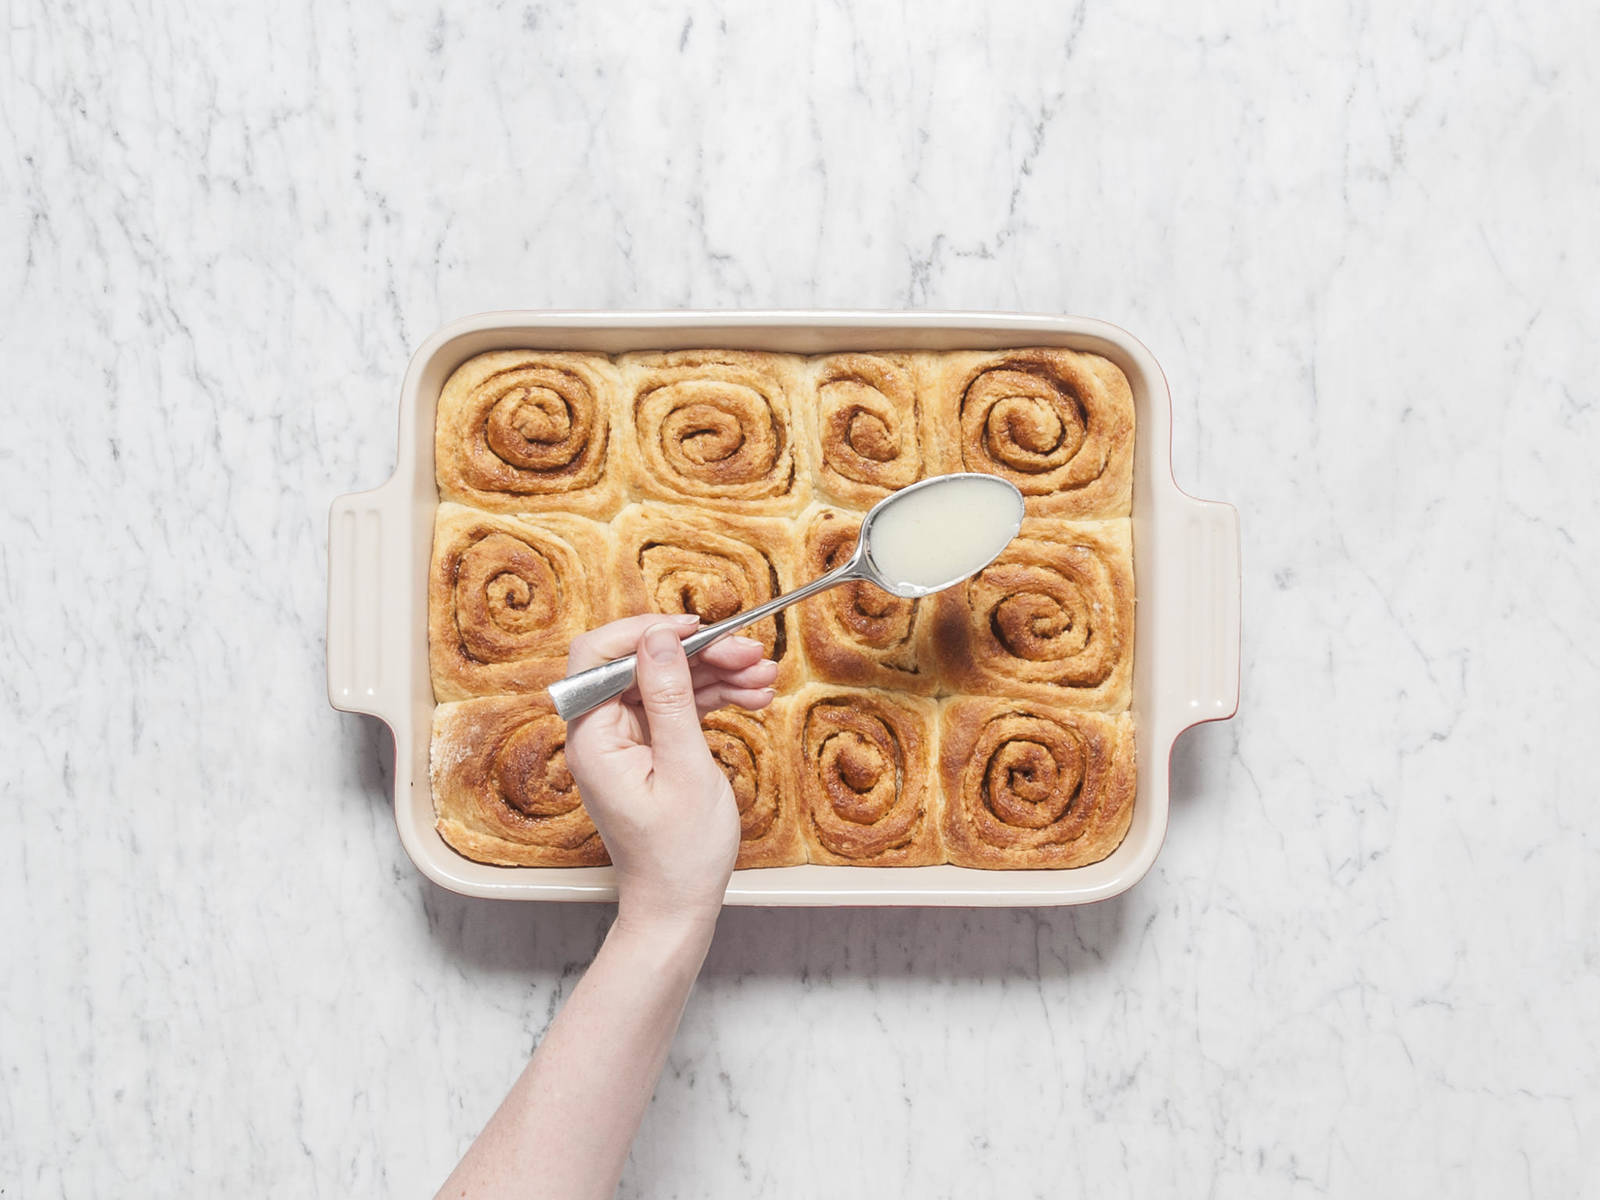 In the meantime, add confectioner's sugar, remaining milk, remaining vanilla bean seeds, remaining salt, and cream cheese to a small mixing bowl and stir to combine. Drizzle over lukewarm cinnamon buns and enjoy!